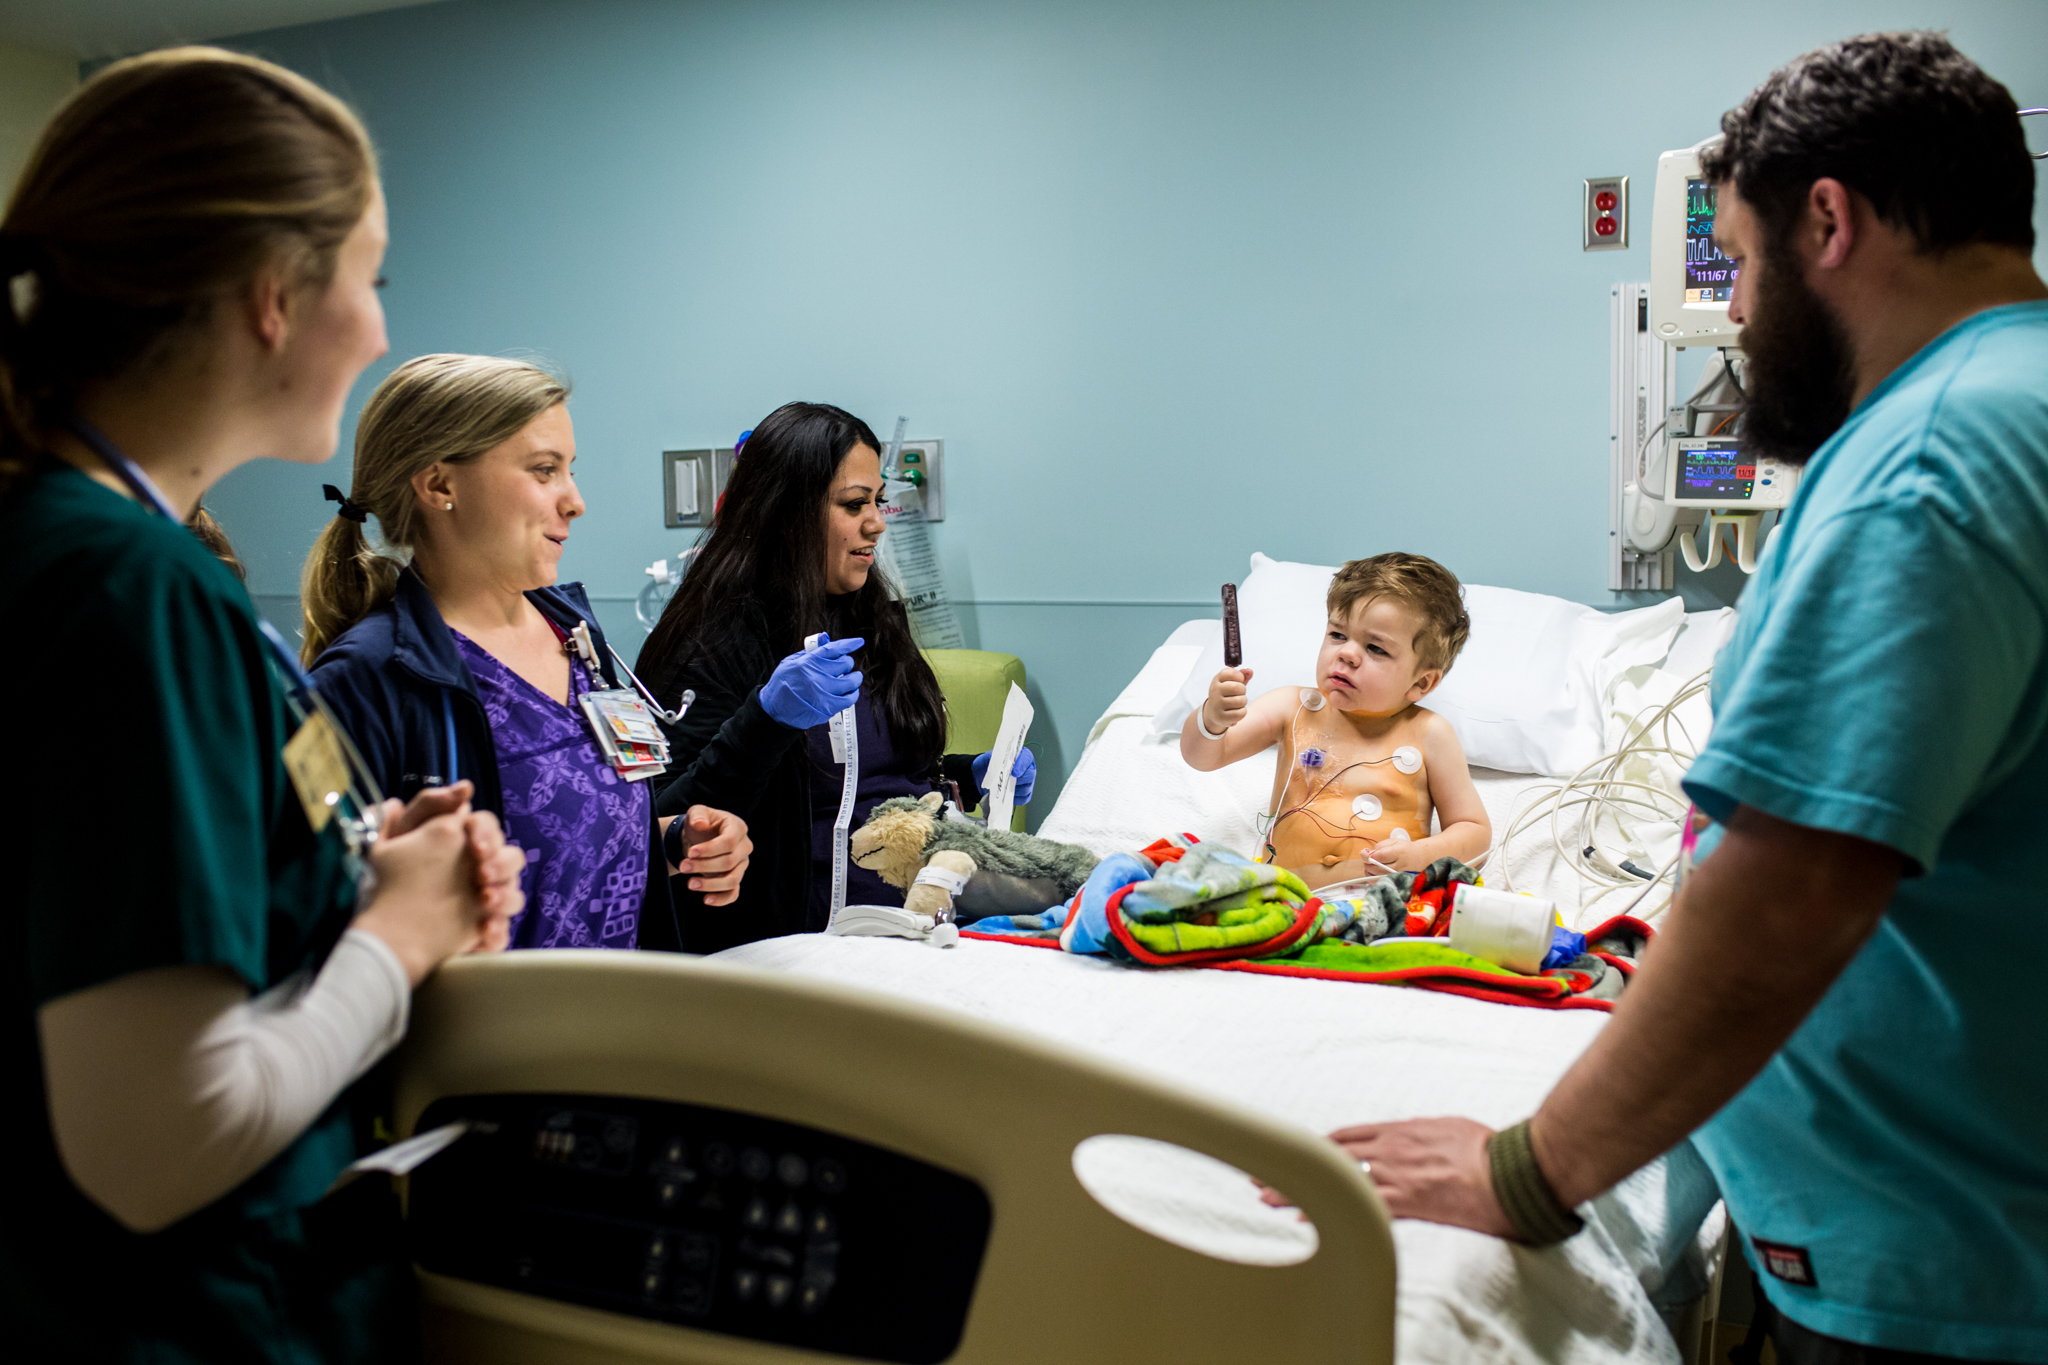 boy in a hospital bed eating a popsicle